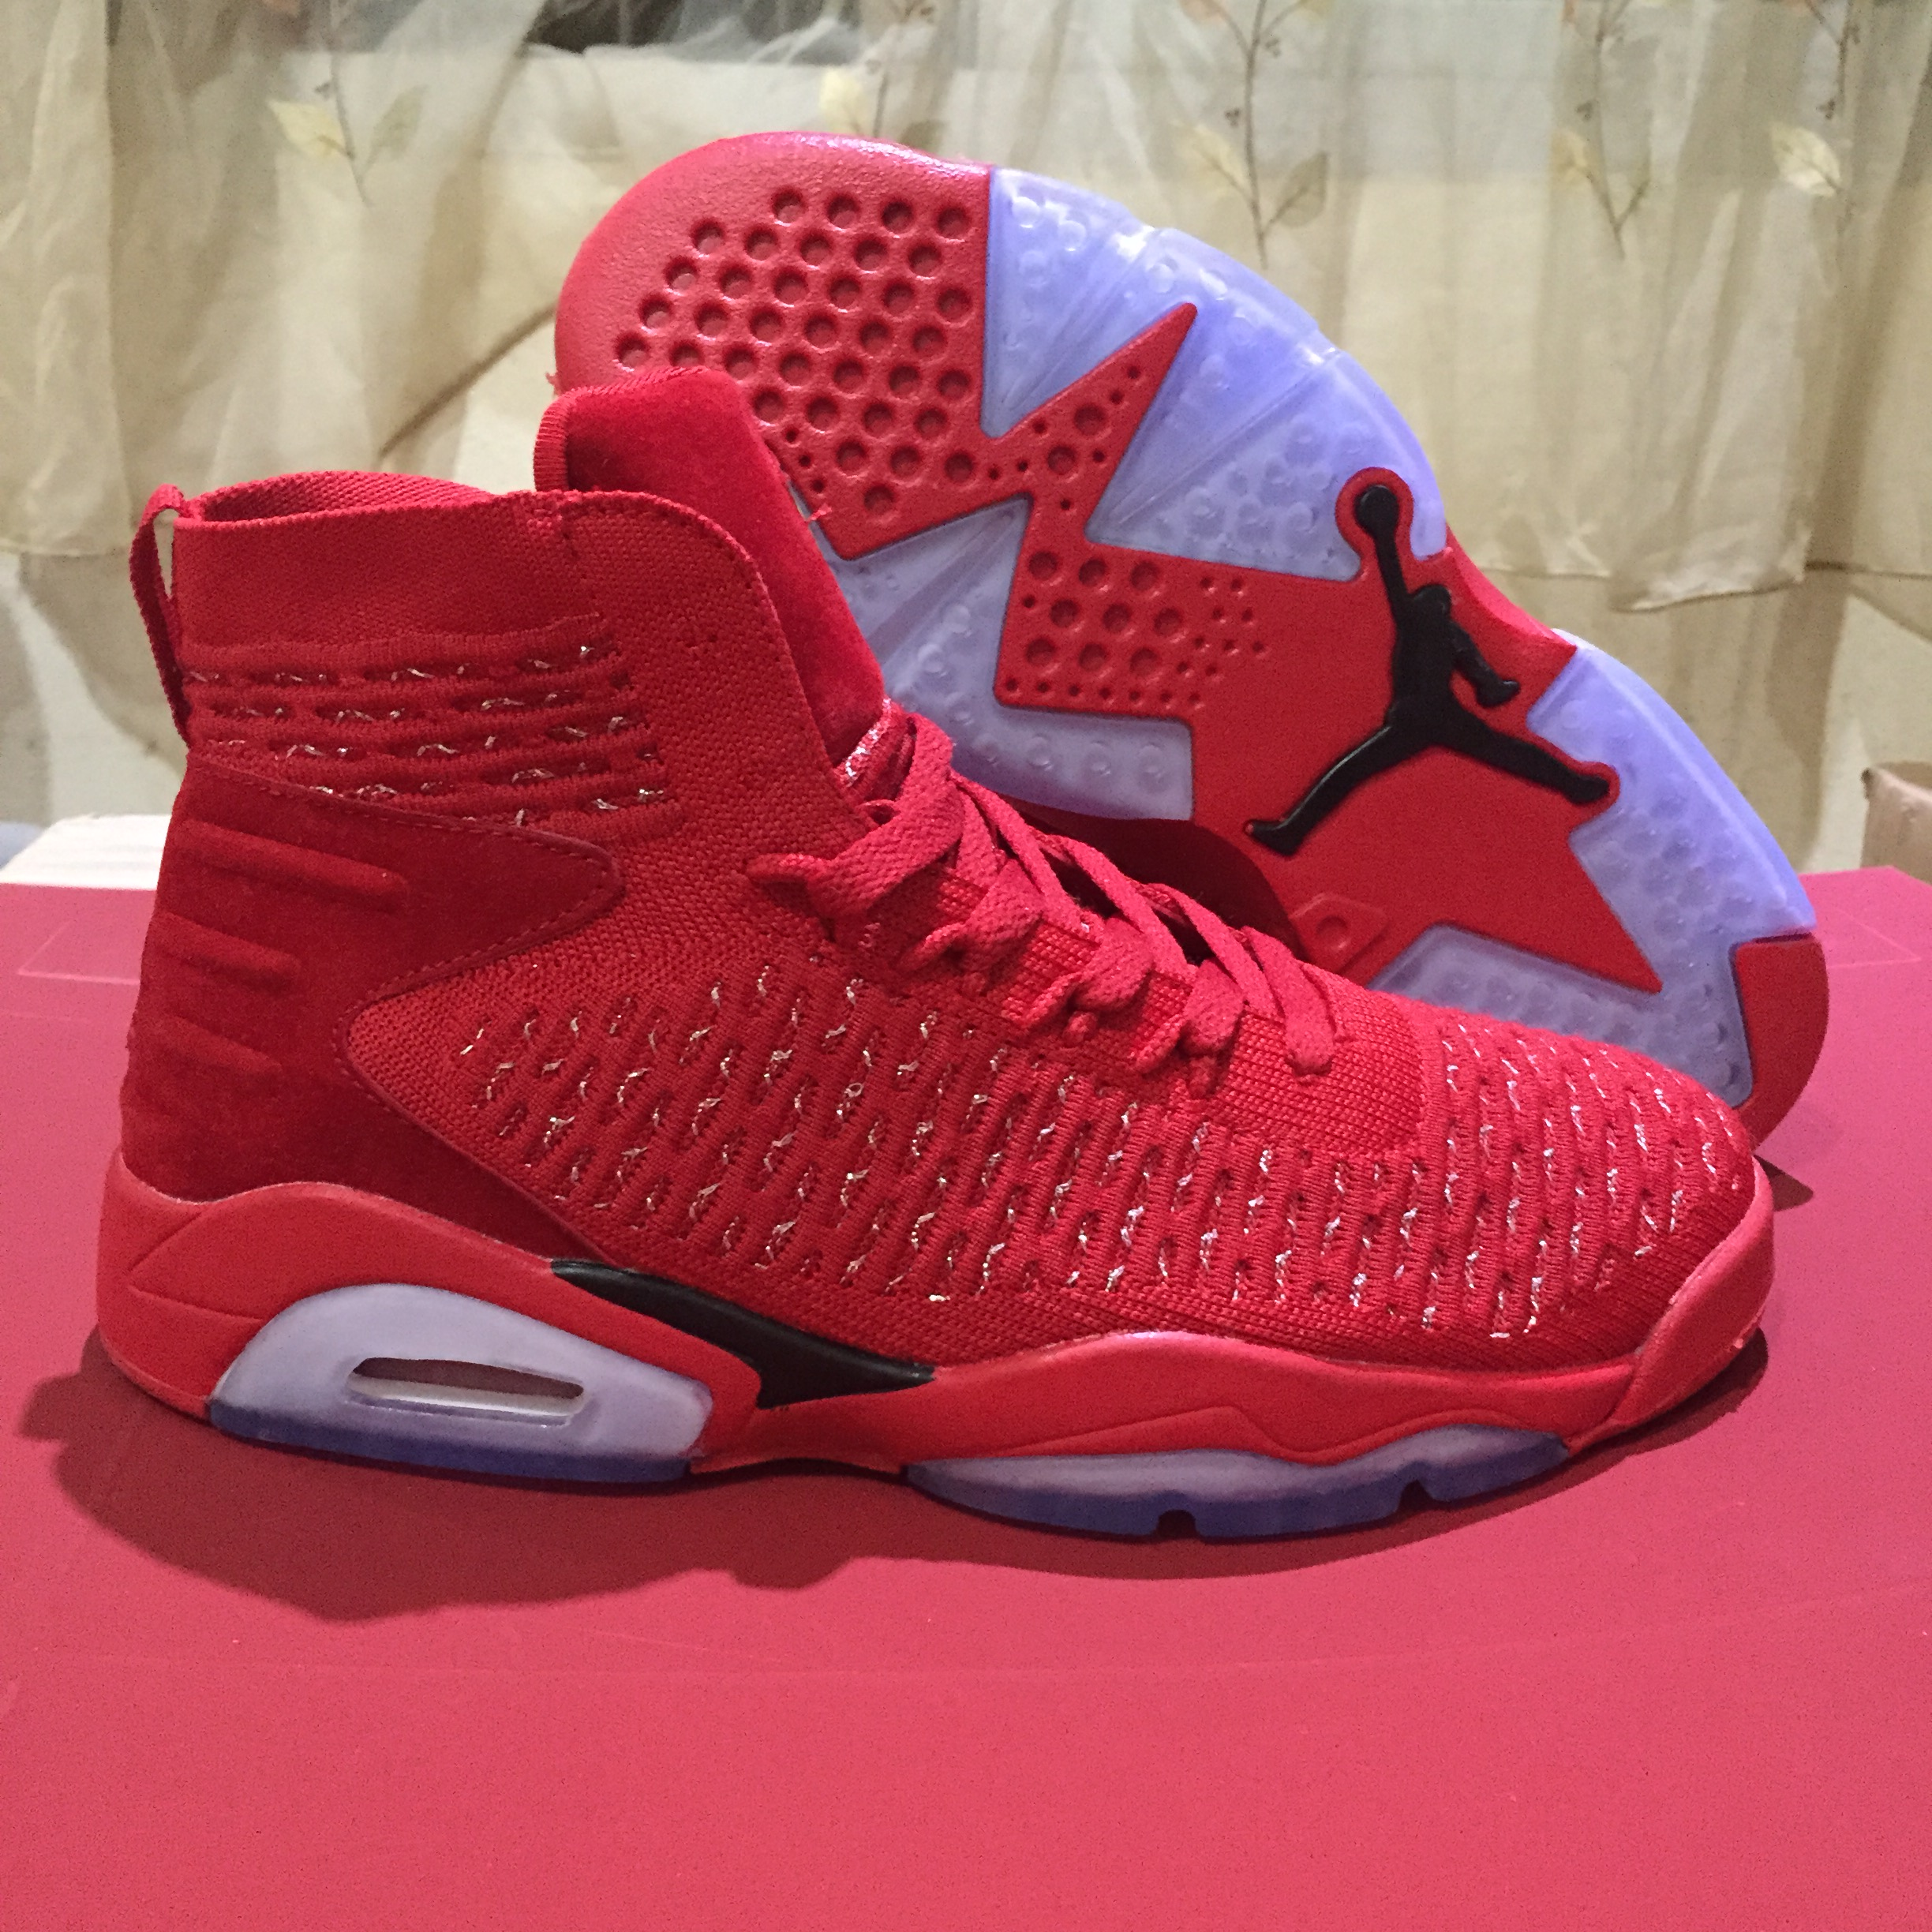 New Air Jordan 6 Flyknit China Red Shoes